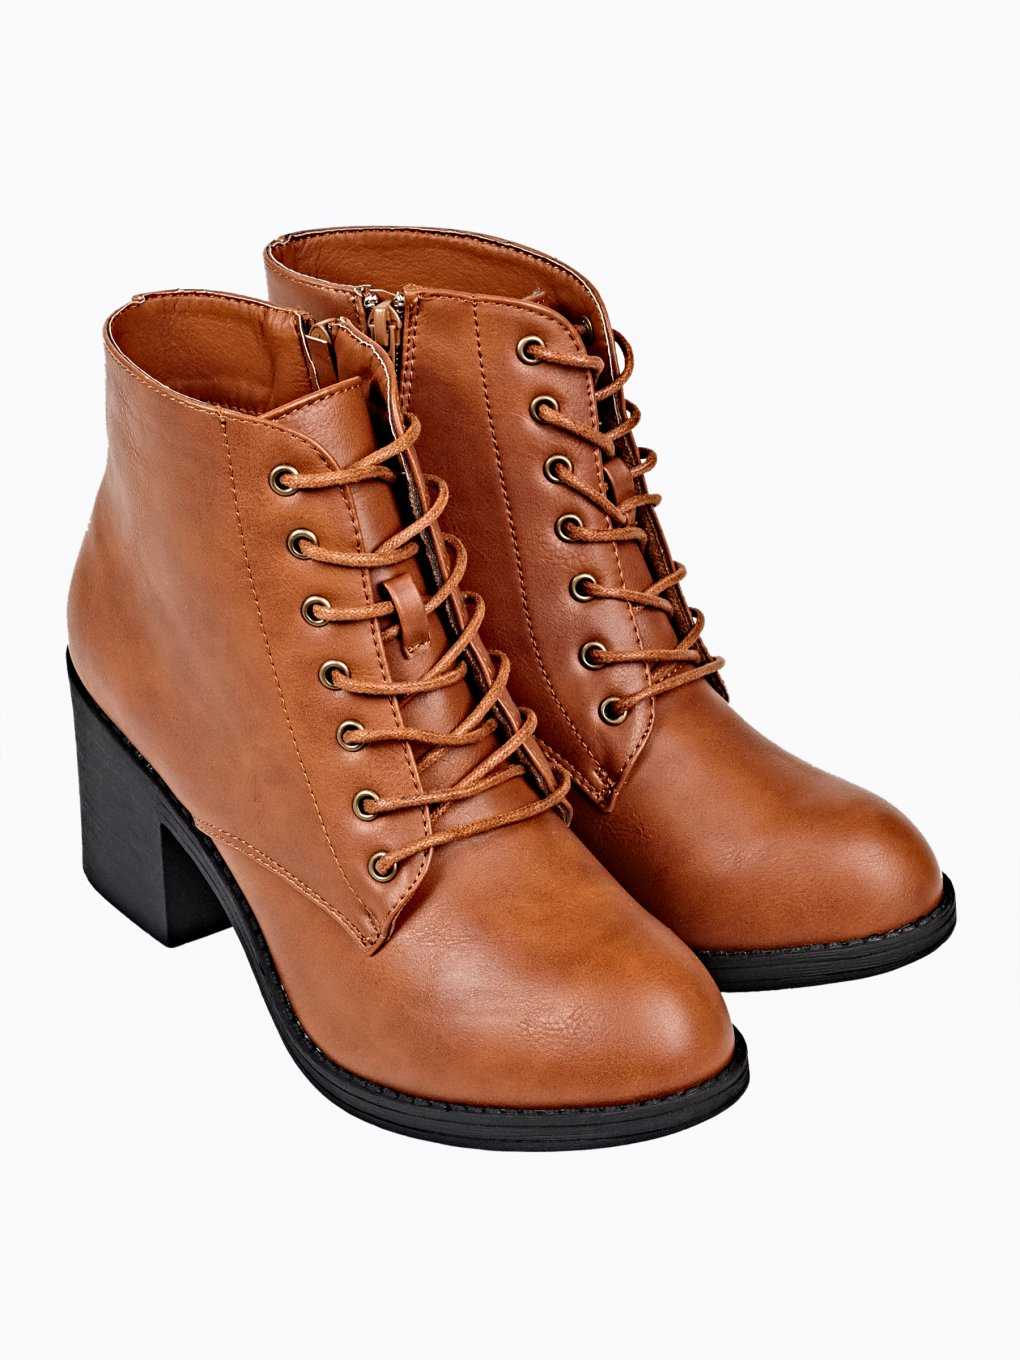 High heel lace-up ankle boots